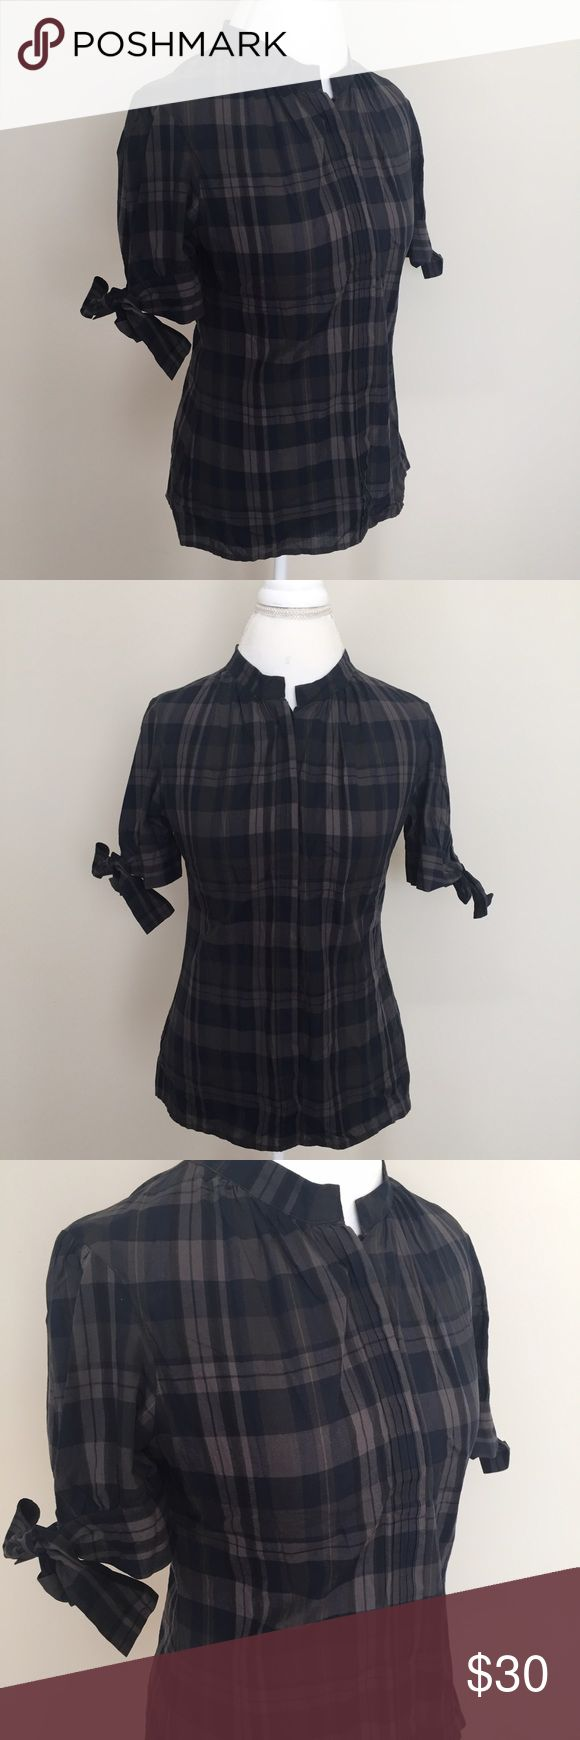 Ted Baker London Plaid High Collar Pleated Shirt Ted Baker London Plaid button front shirt (hidden front button placket) with high collar style, Pleated detail at front, and ties at sleeves. Size Ted 3, which equals a US size 8 or medium. Excellent condition with no flaws. ⚓️No trades or holds. I accept reasonable offers. I only negotiate through the offer button. I do not model. I ship within two business days of your order. I only use Posh. 🚭🐩B5 Ted Baker Tops Button Down Shirts